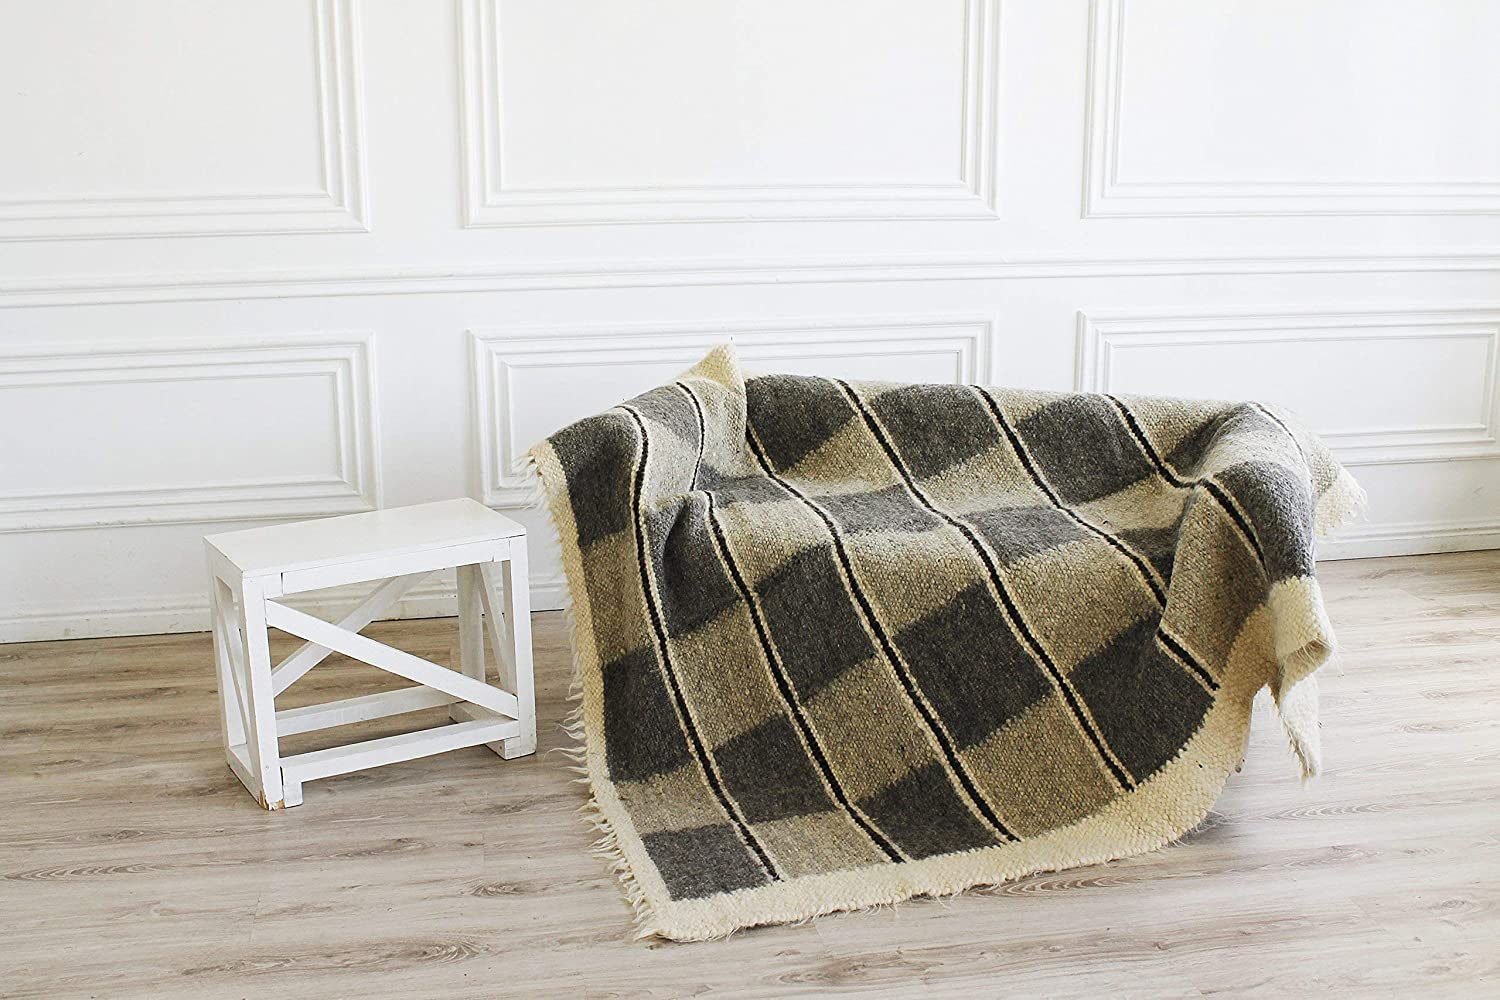 Image of 100 Wool Throw Blanket Checkerboard Pattern Hand Woven Plaid Bed Sofa Cover Modern Home Decor Home and Kitchen